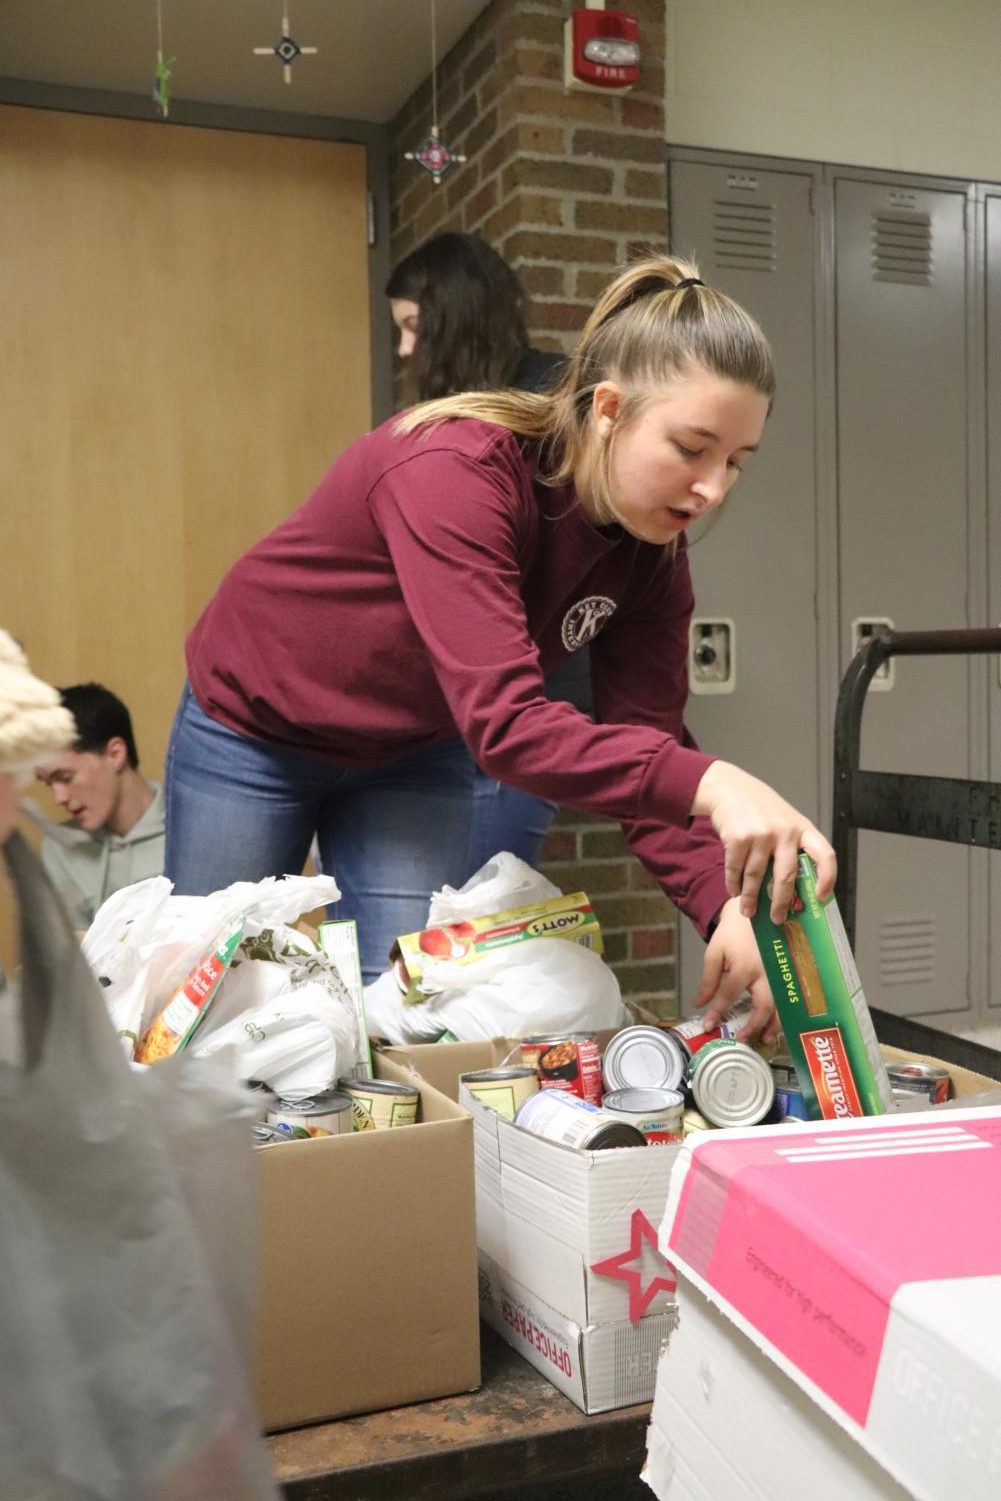 Senior Maci Best puts food on a cart during the Key Club food drive pick-up. On Dec. 17, Key Club members picked up food around the school that students brought in to their SRTs for the food drive.